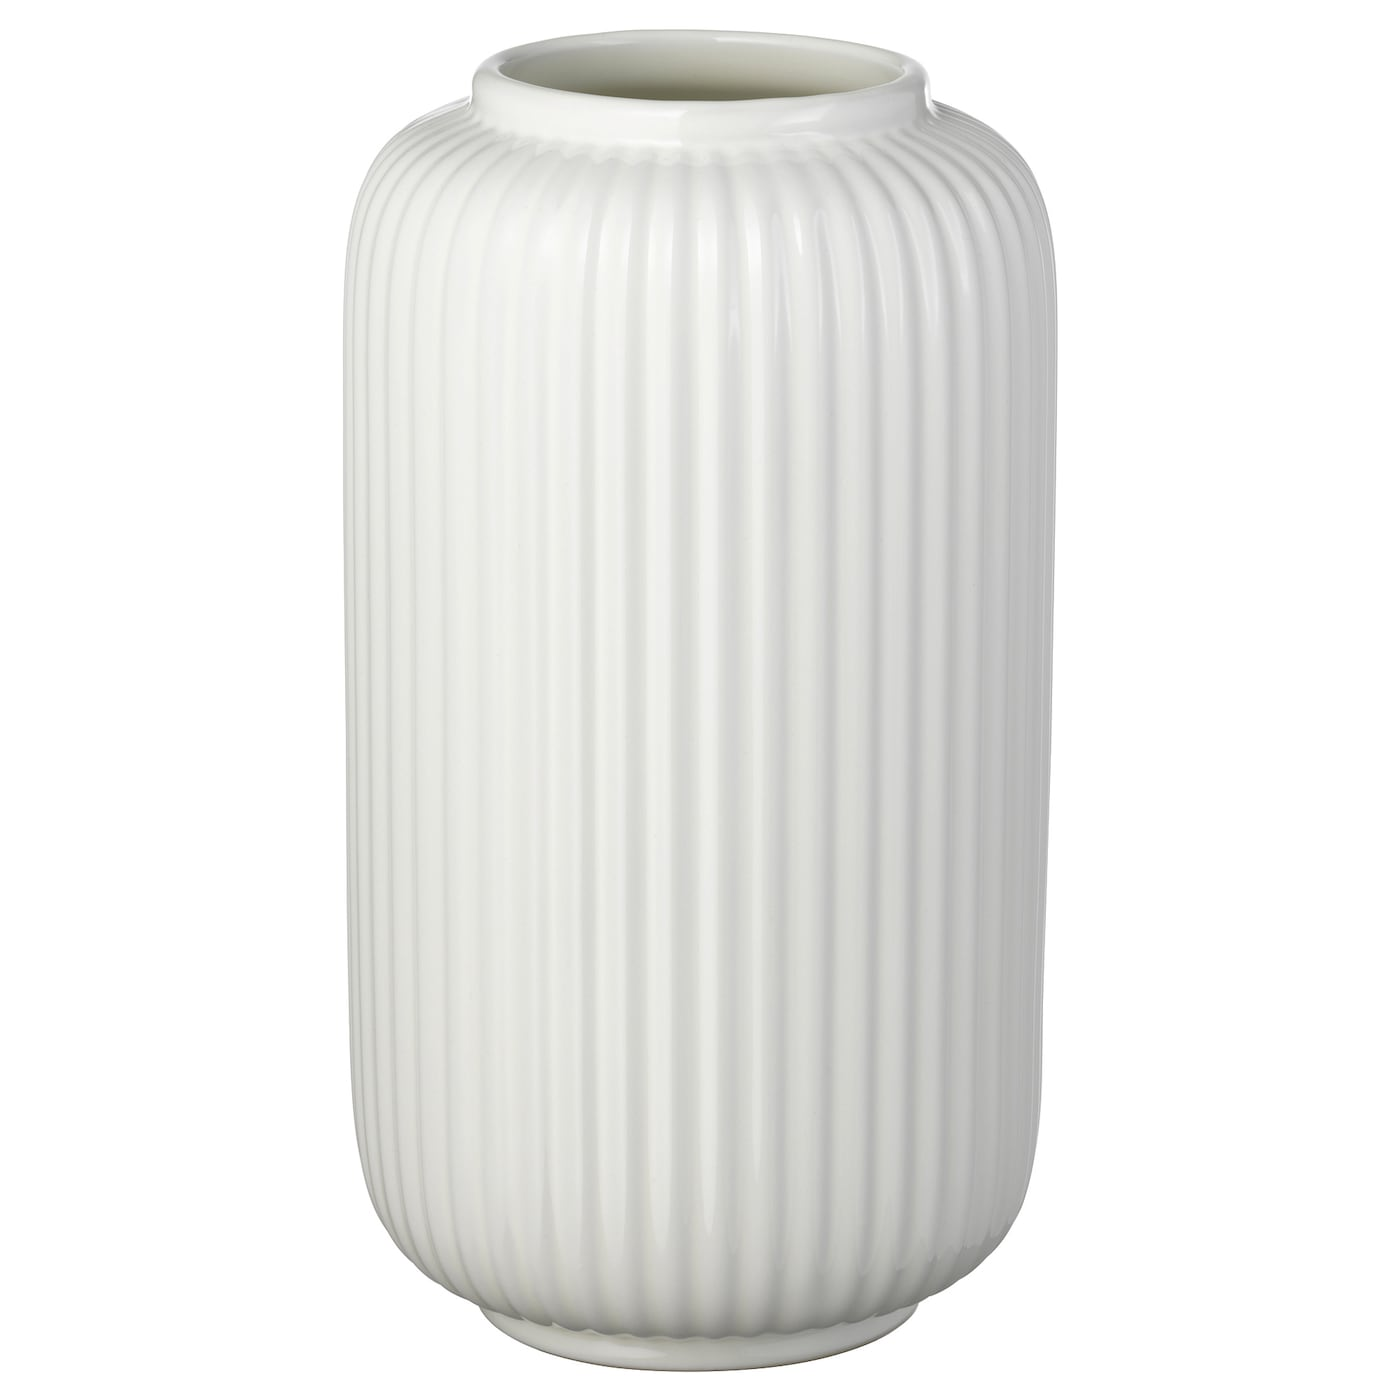 IKEA STILREN vase Use the vase with flowers or alone, as a beautiful object in its own right.